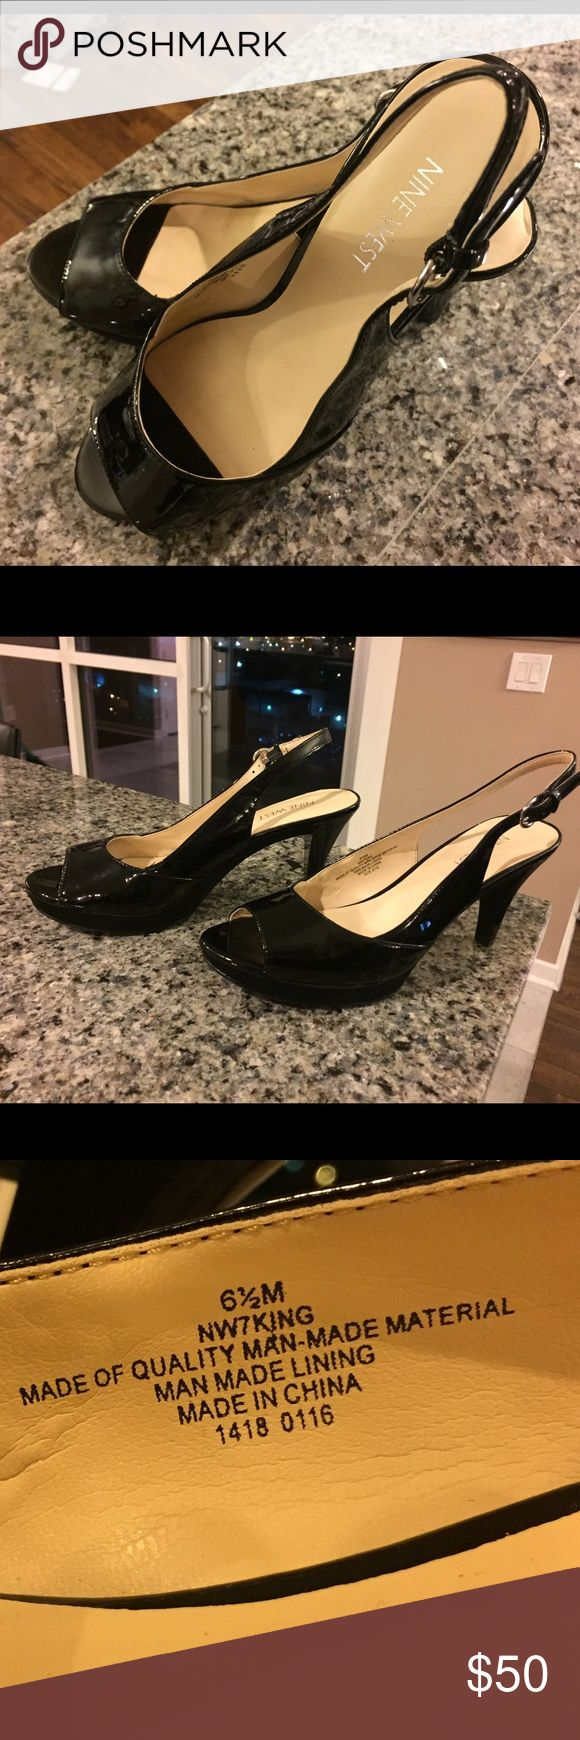 Nine West BRAND NEW heels with back strap Brand New never worn, Nine West, 61/2, Black, pumps, not too low not too high with back strap Nine West Shoes Heels